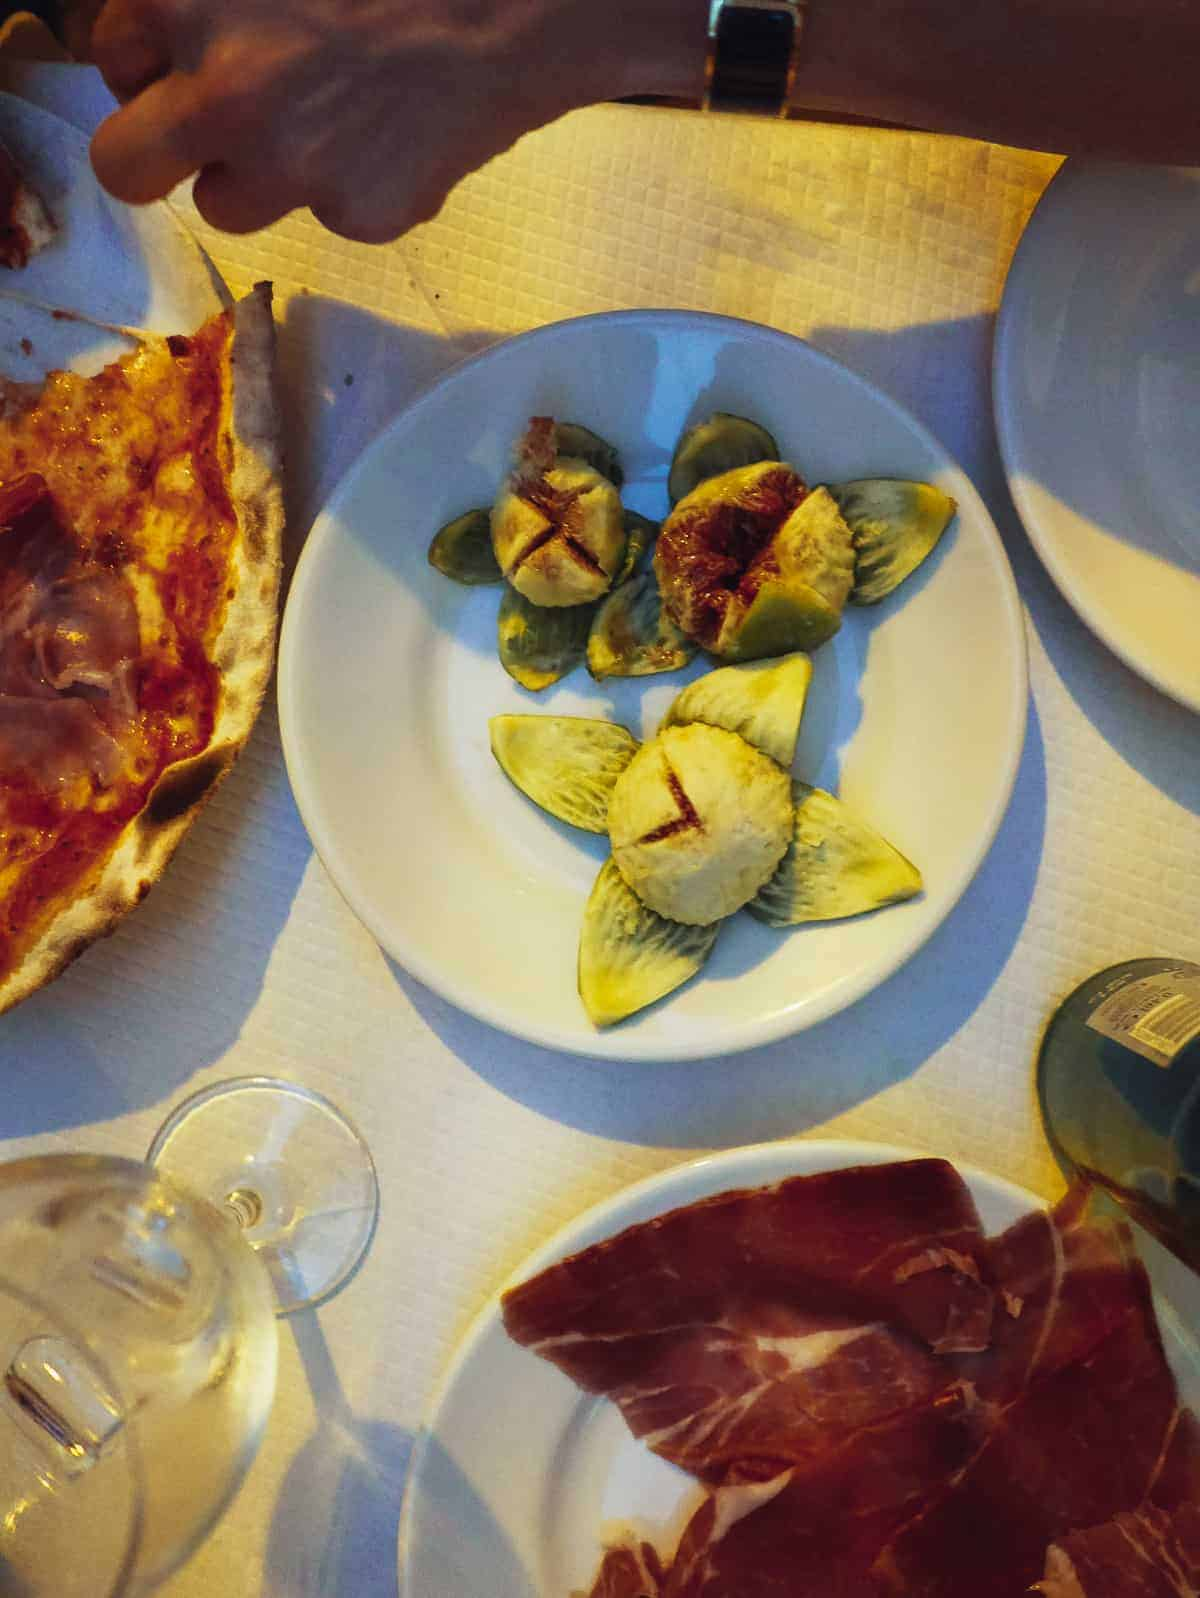 fresh figs and prosciutto served in a restaurant